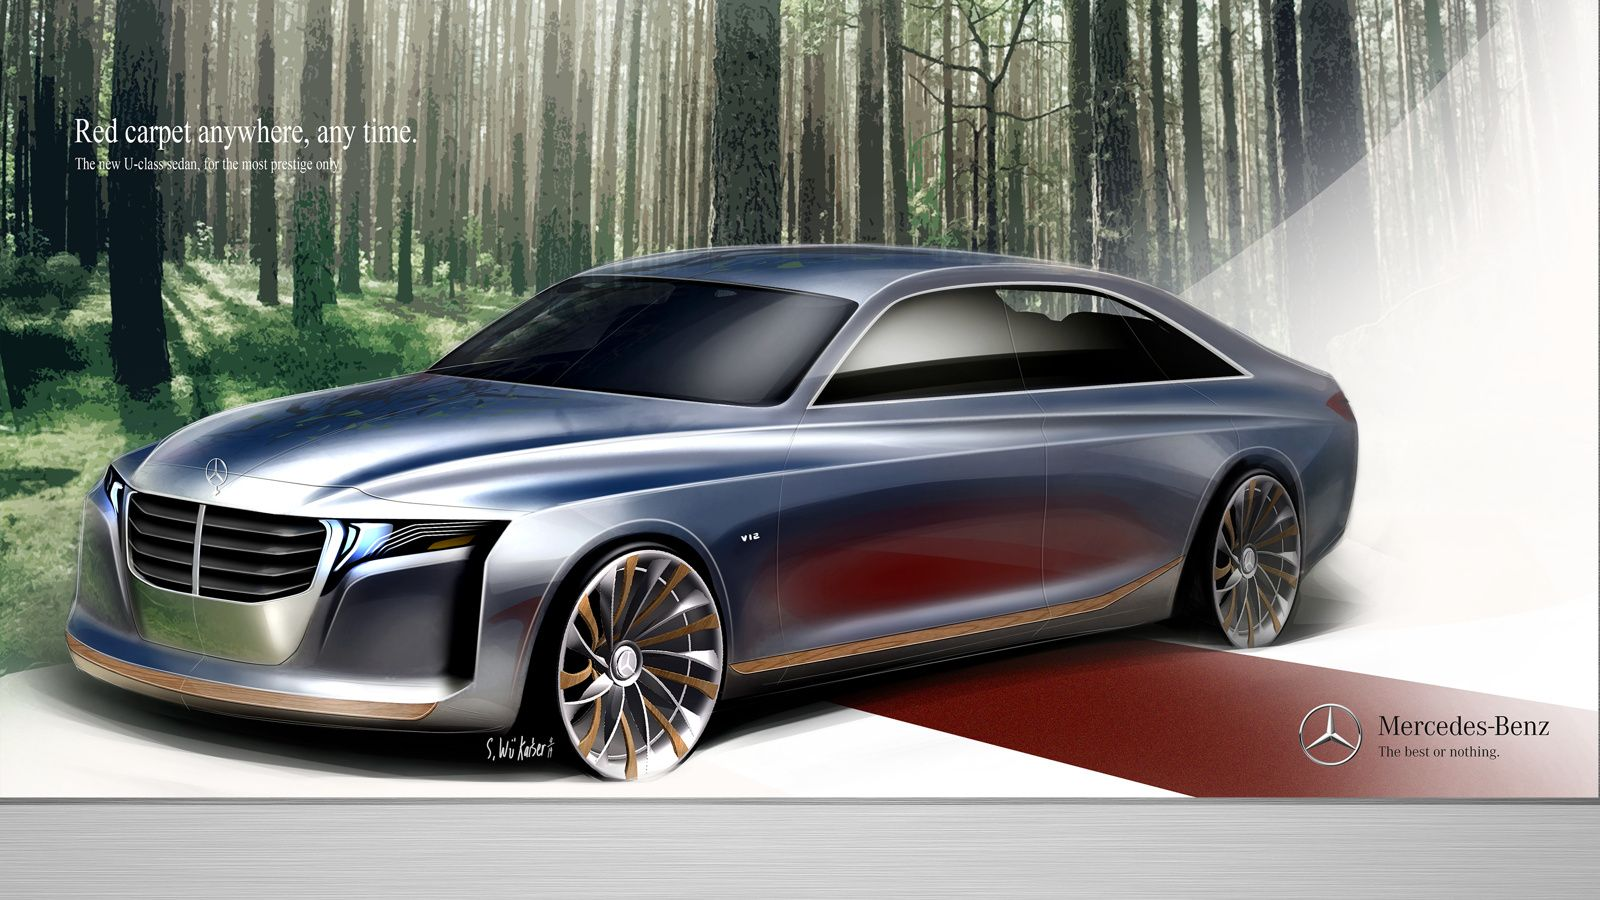 2021 MercedesBenz UClass Concept The Bentley And Rolls